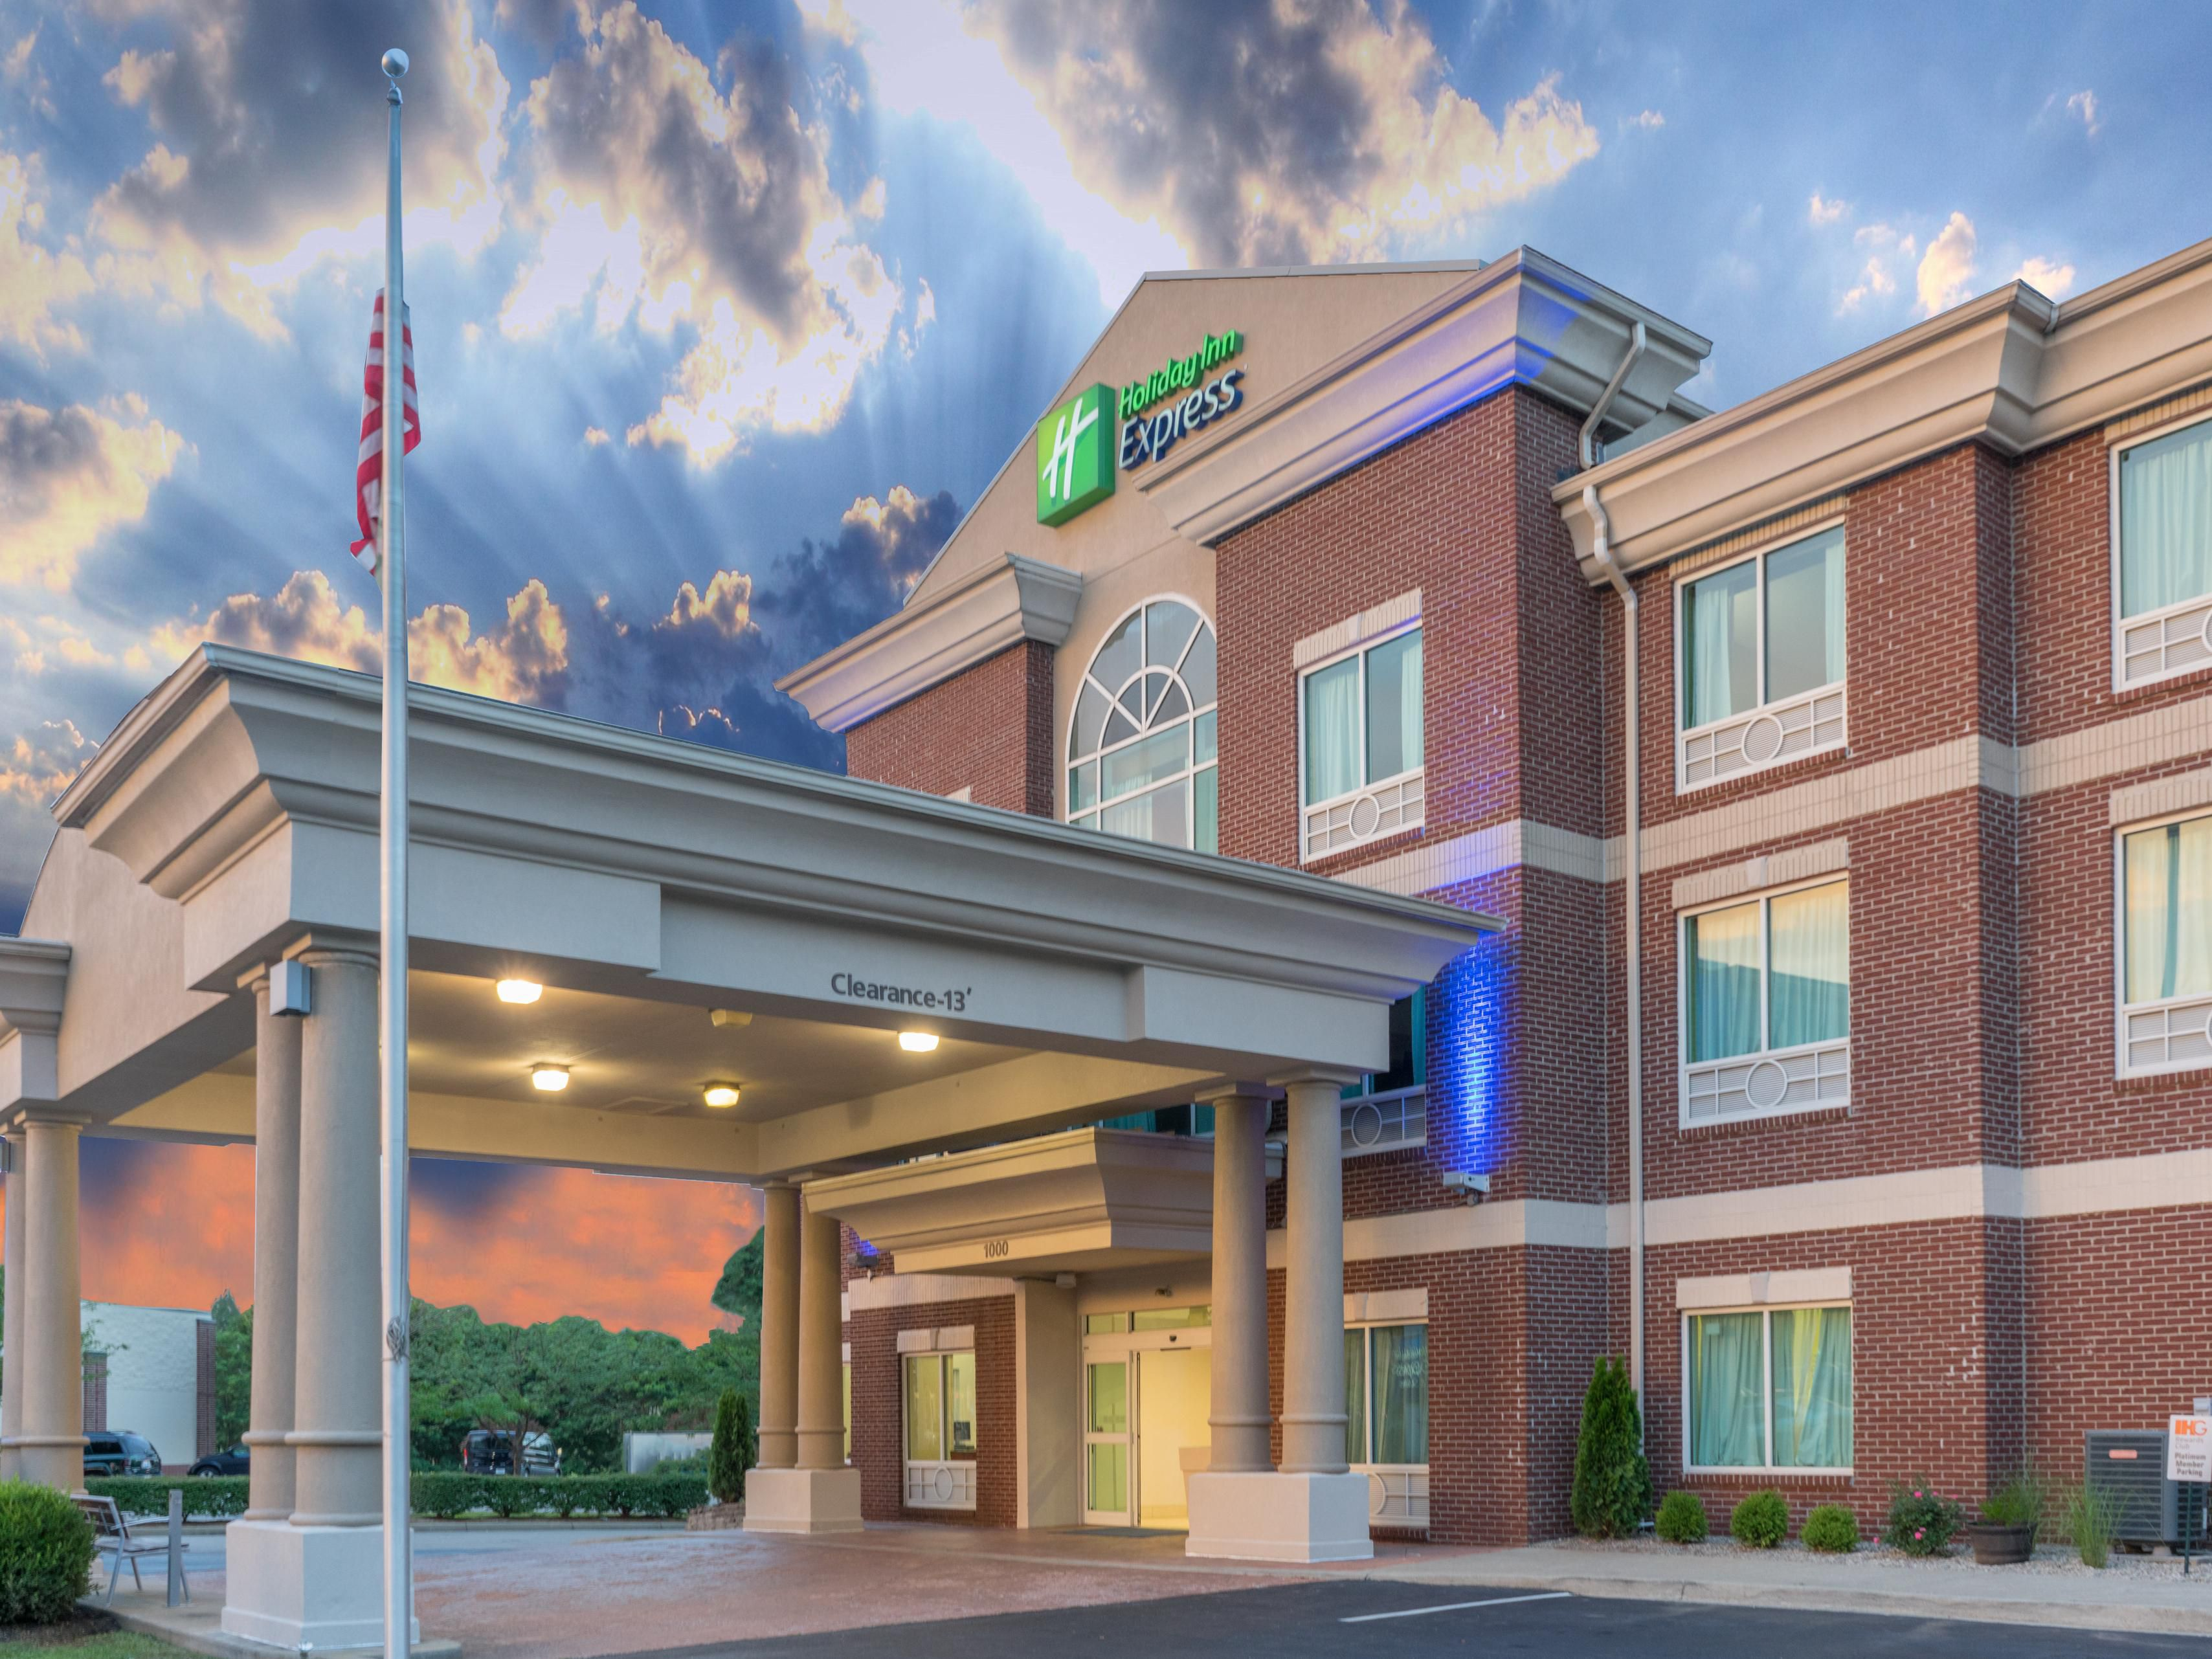 Holiday Inn Express Lexington Affordable Hotels By Ihg Coby Fence 8 2 Ampquotbutterflyampquot Suites Frankfort In Kentucky